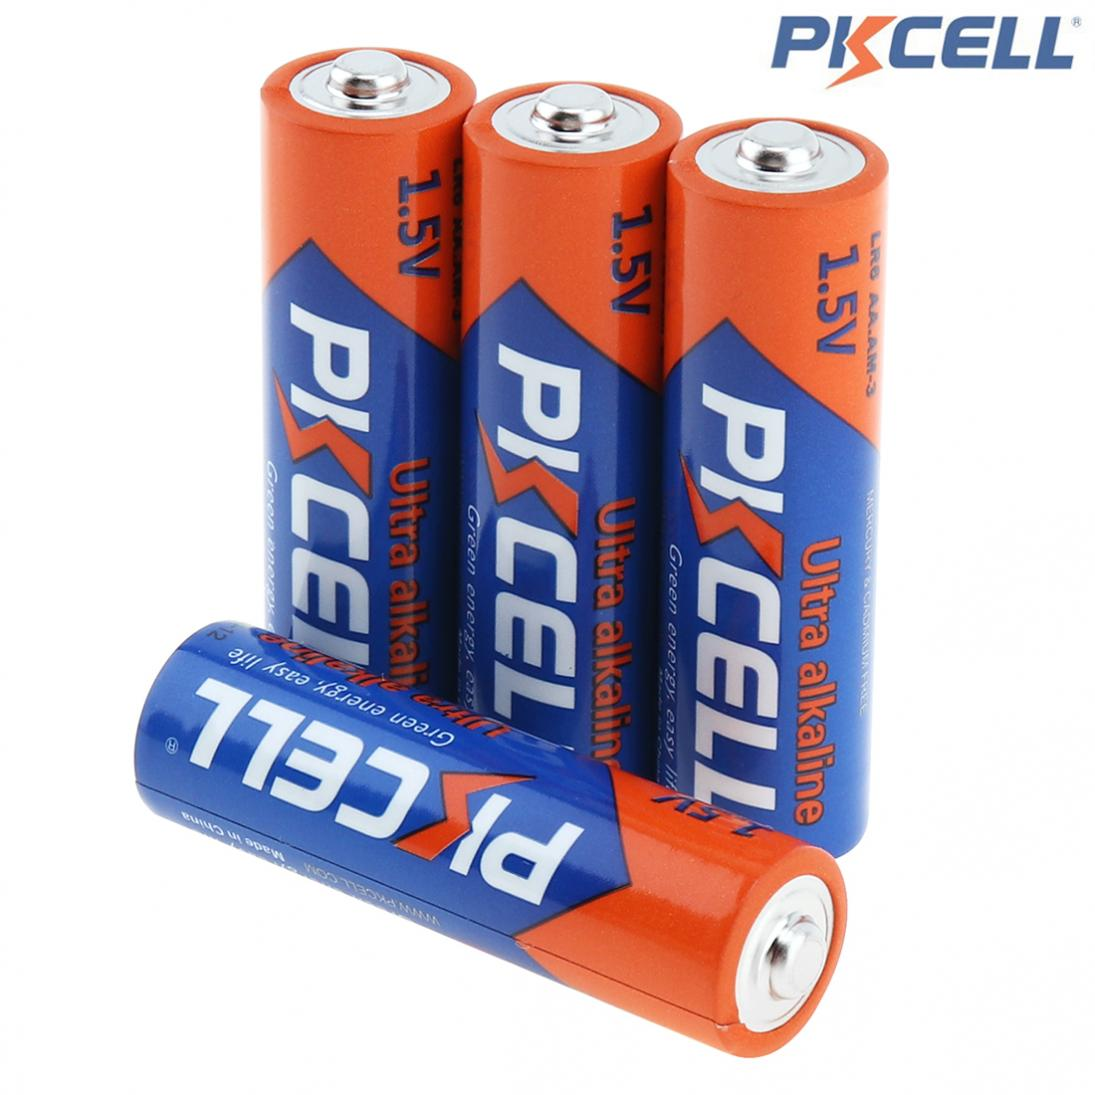 PKCELL 4pcs <font><b>AA</b></font> LR6 <font><b>1.5V</b></font> Alkaline Dry <font><b>Battery</b></font> E91 AM3 MN1500 Primary Batteires for Car Camera Mouse Shaver Recreational Machines image